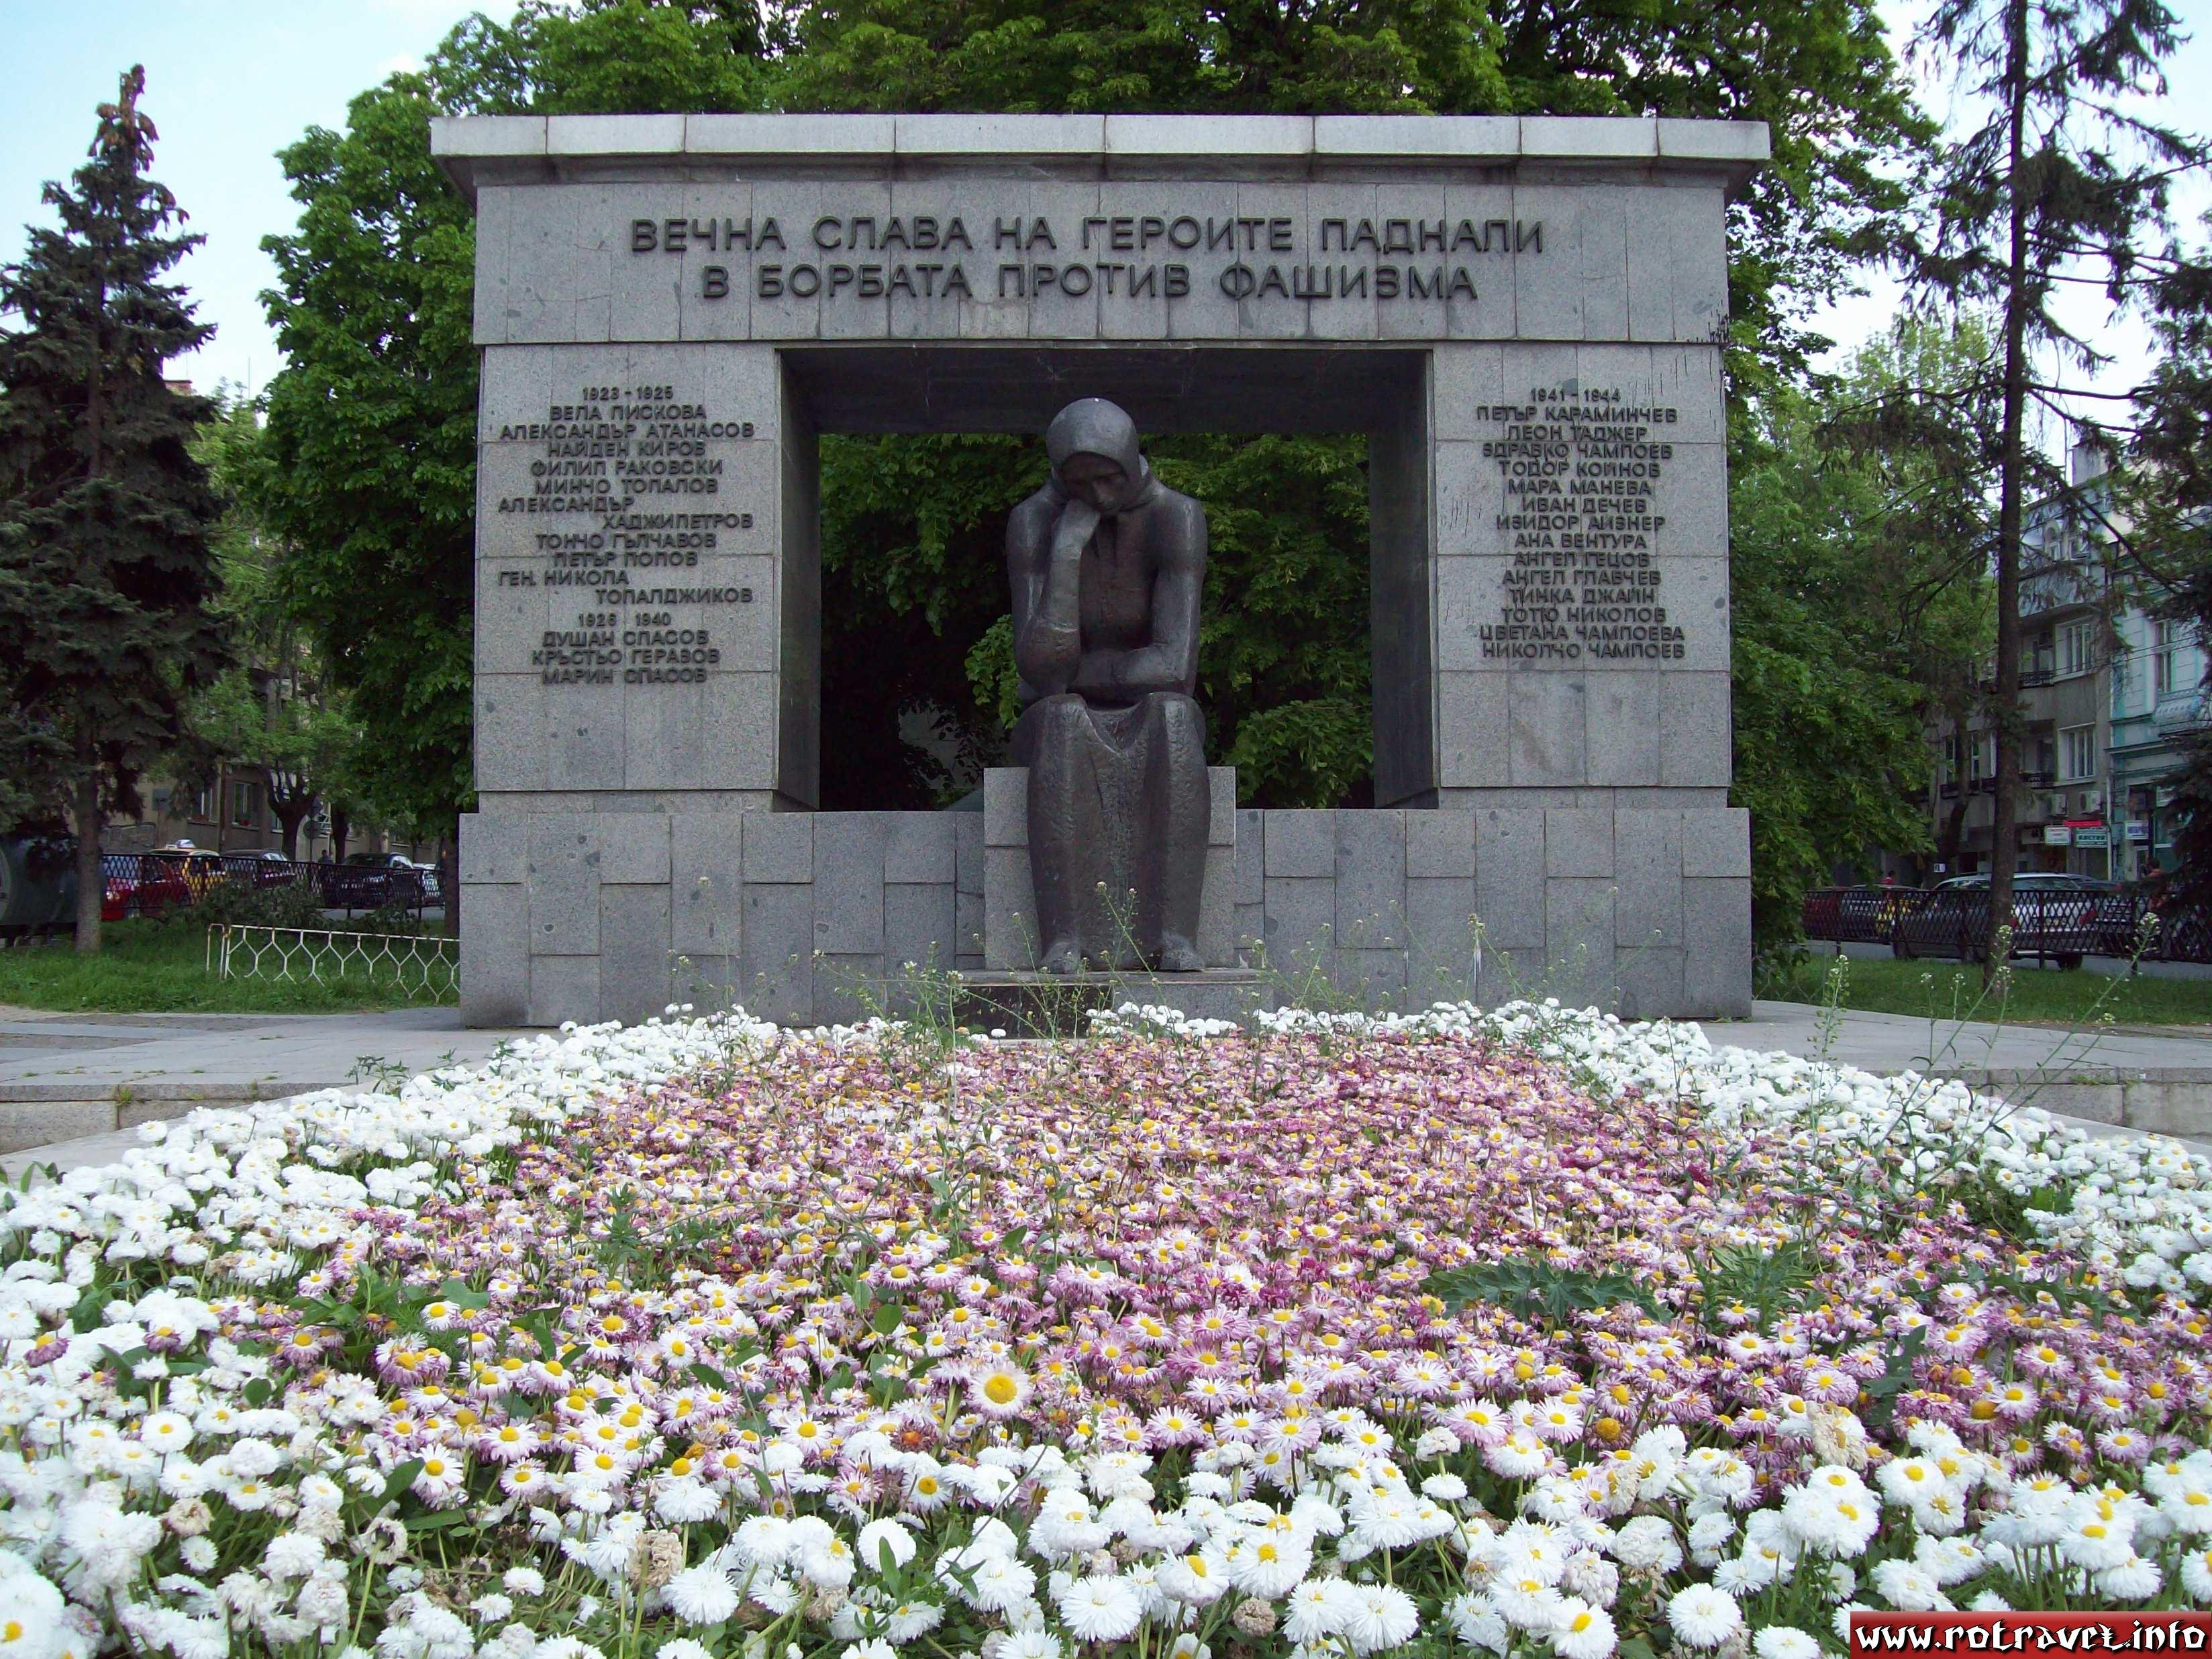 A monument dedicated for the victory against the fascism